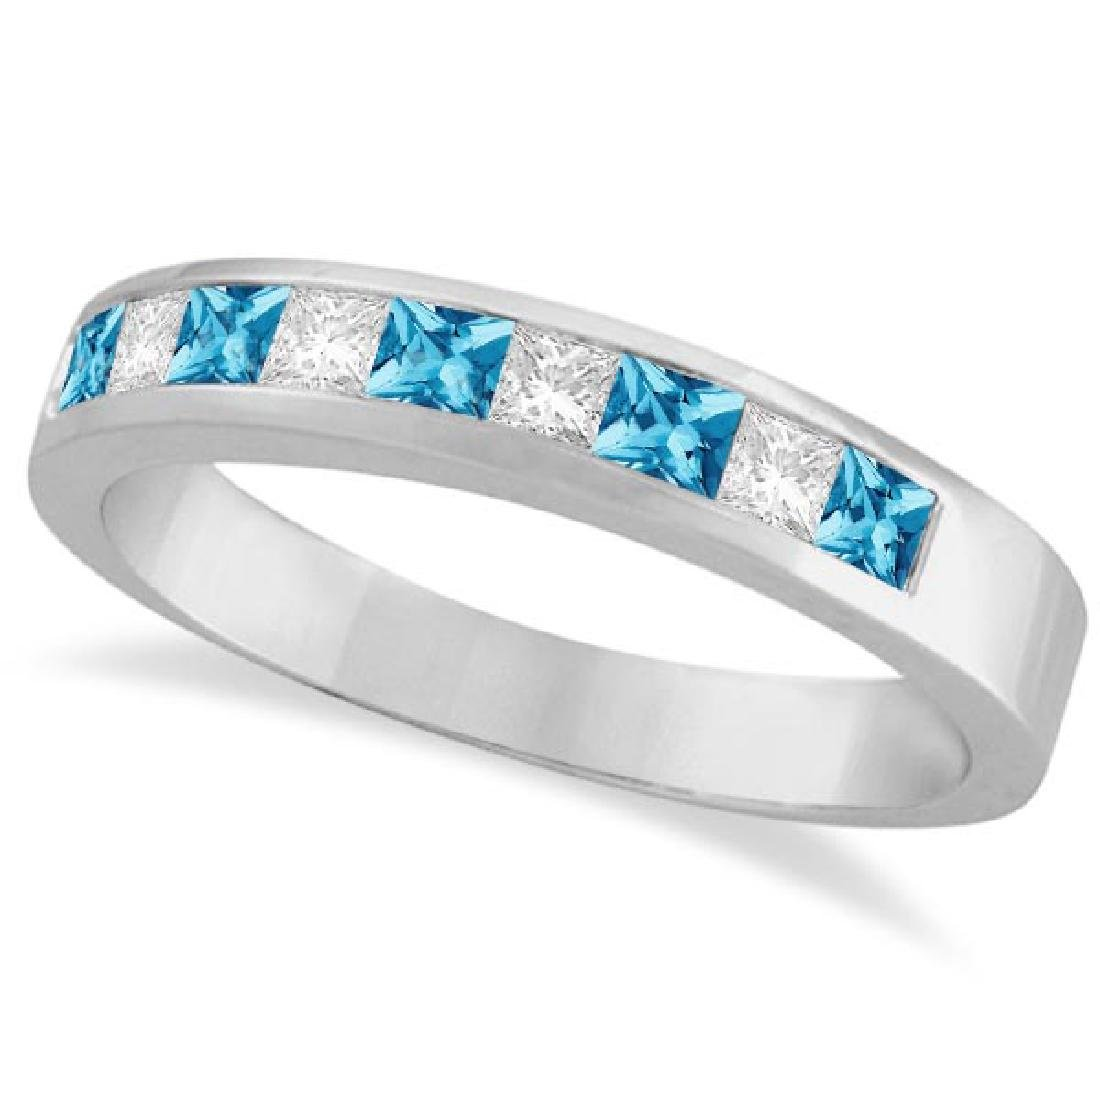 Princess Channel-Set Diamond and Blue Topaz Ring Band 1